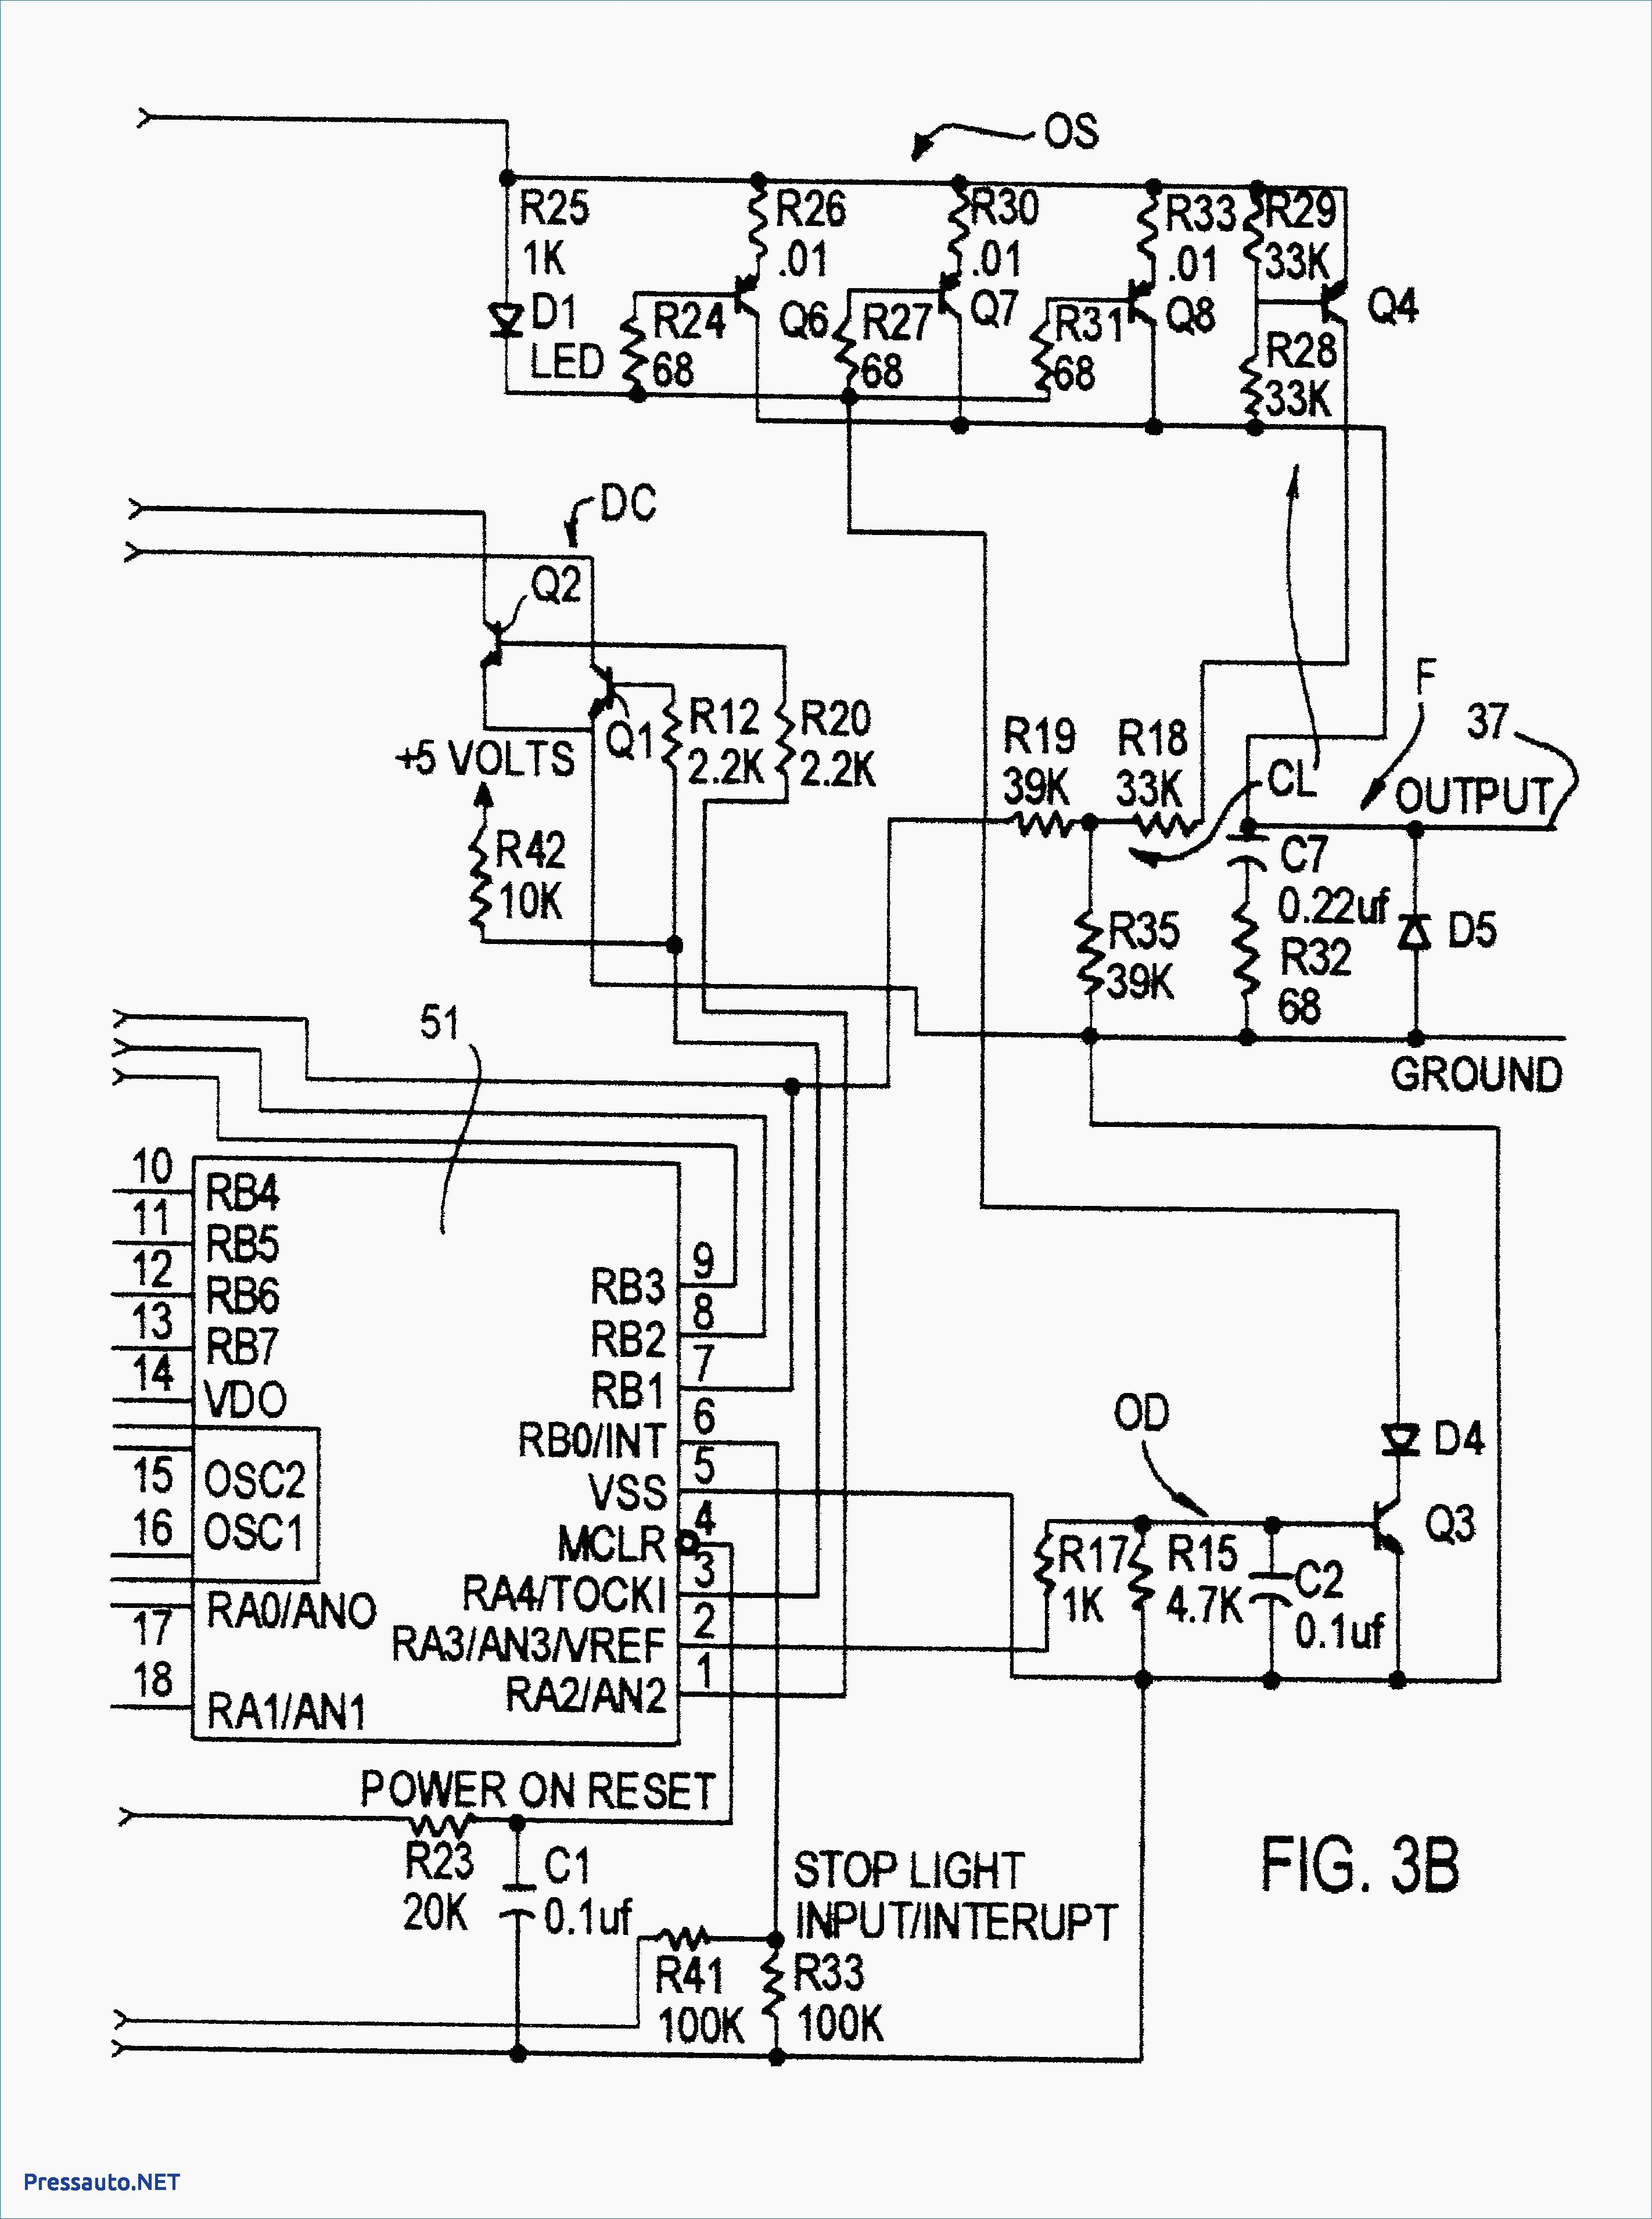 Guitar Wiring Diagram Creator Save Electric Circuit Diagram Creator Inspirational Boss Od 1 Overdrive